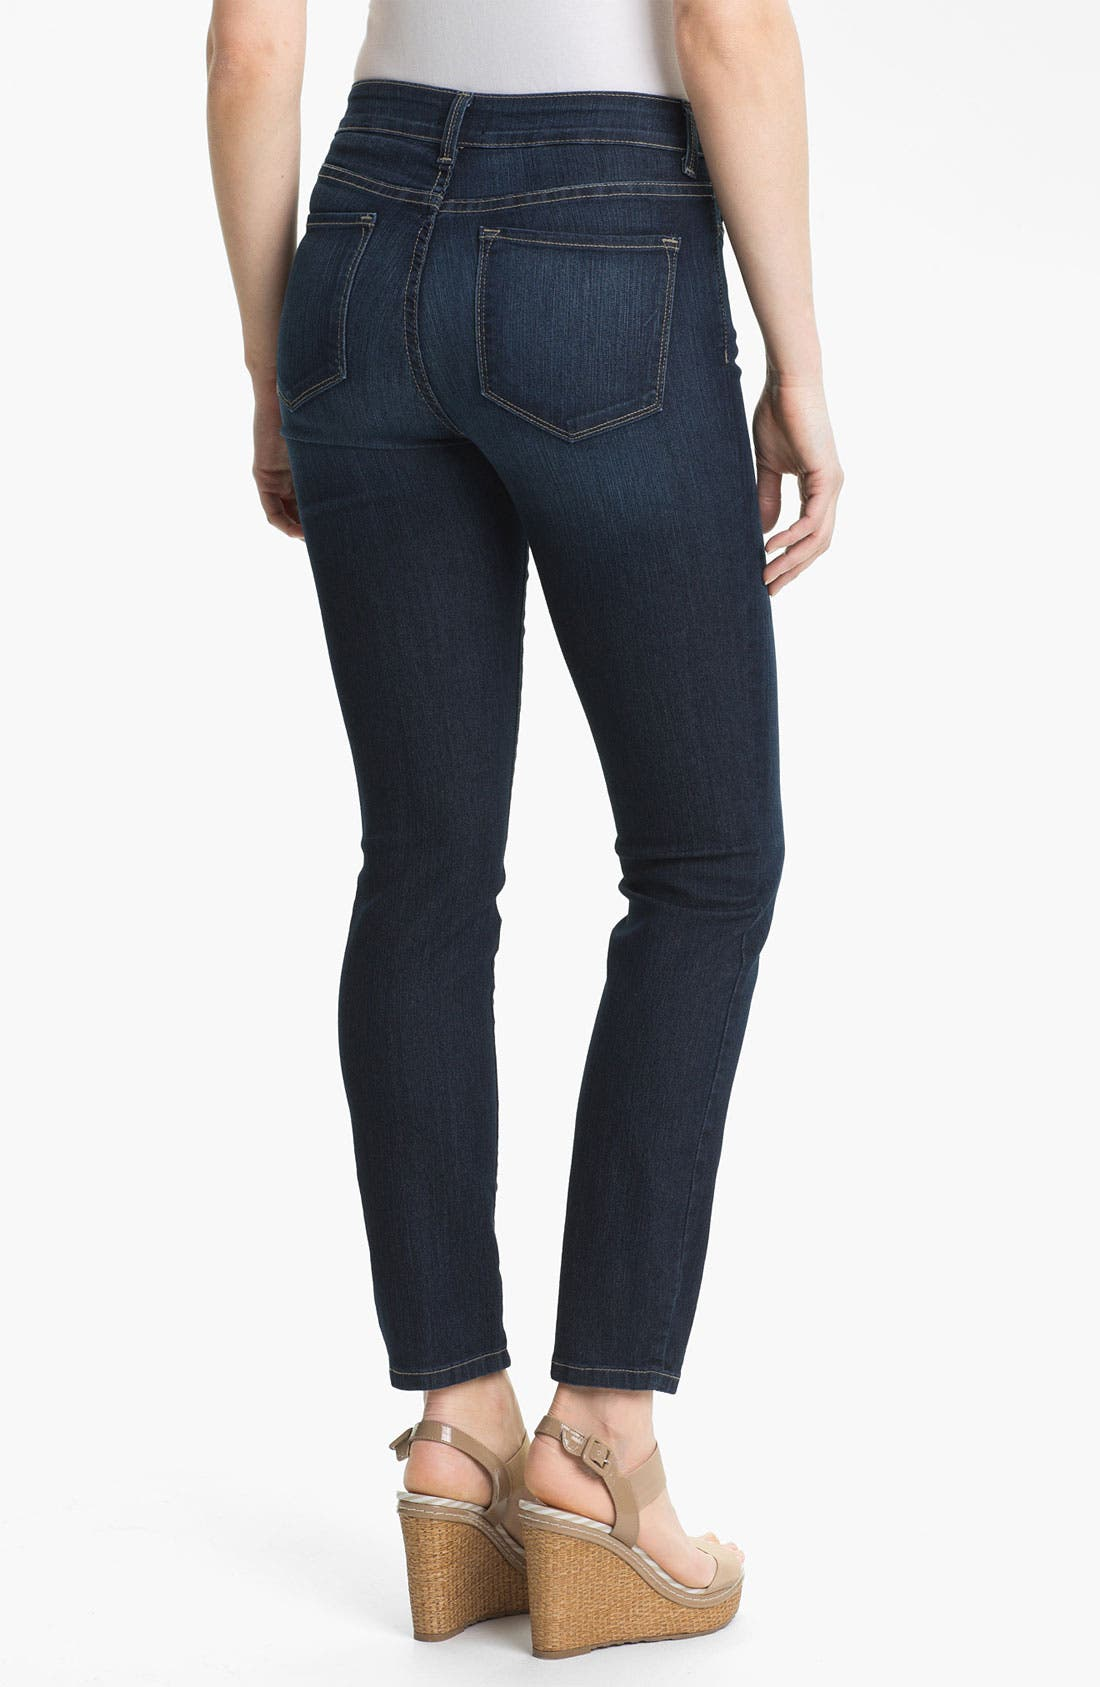 'Alina' Stretch Skinny Jeans,                             Alternate thumbnail 2, color,                             425